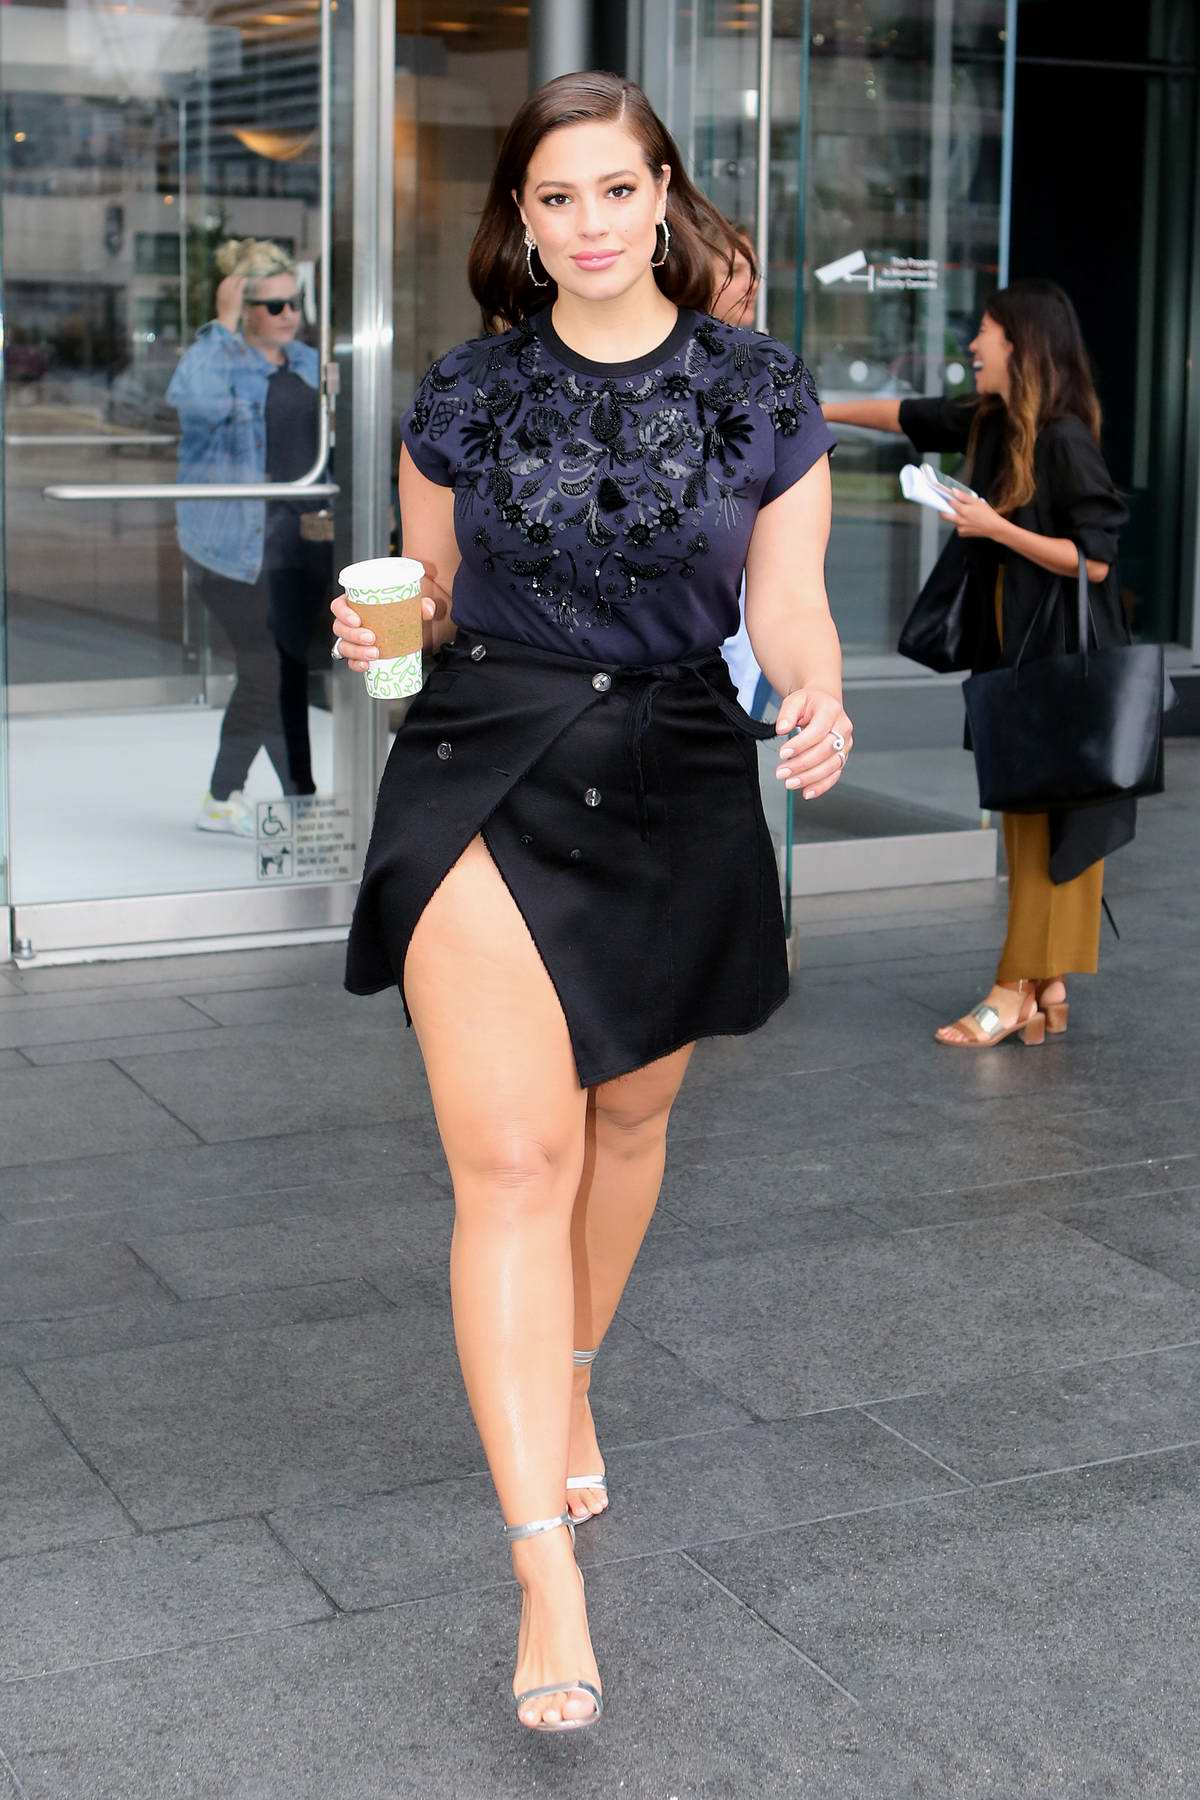 Ashley Graham at the Corus Building while making an appearance on the Global Morning Show in Toronto, Canada